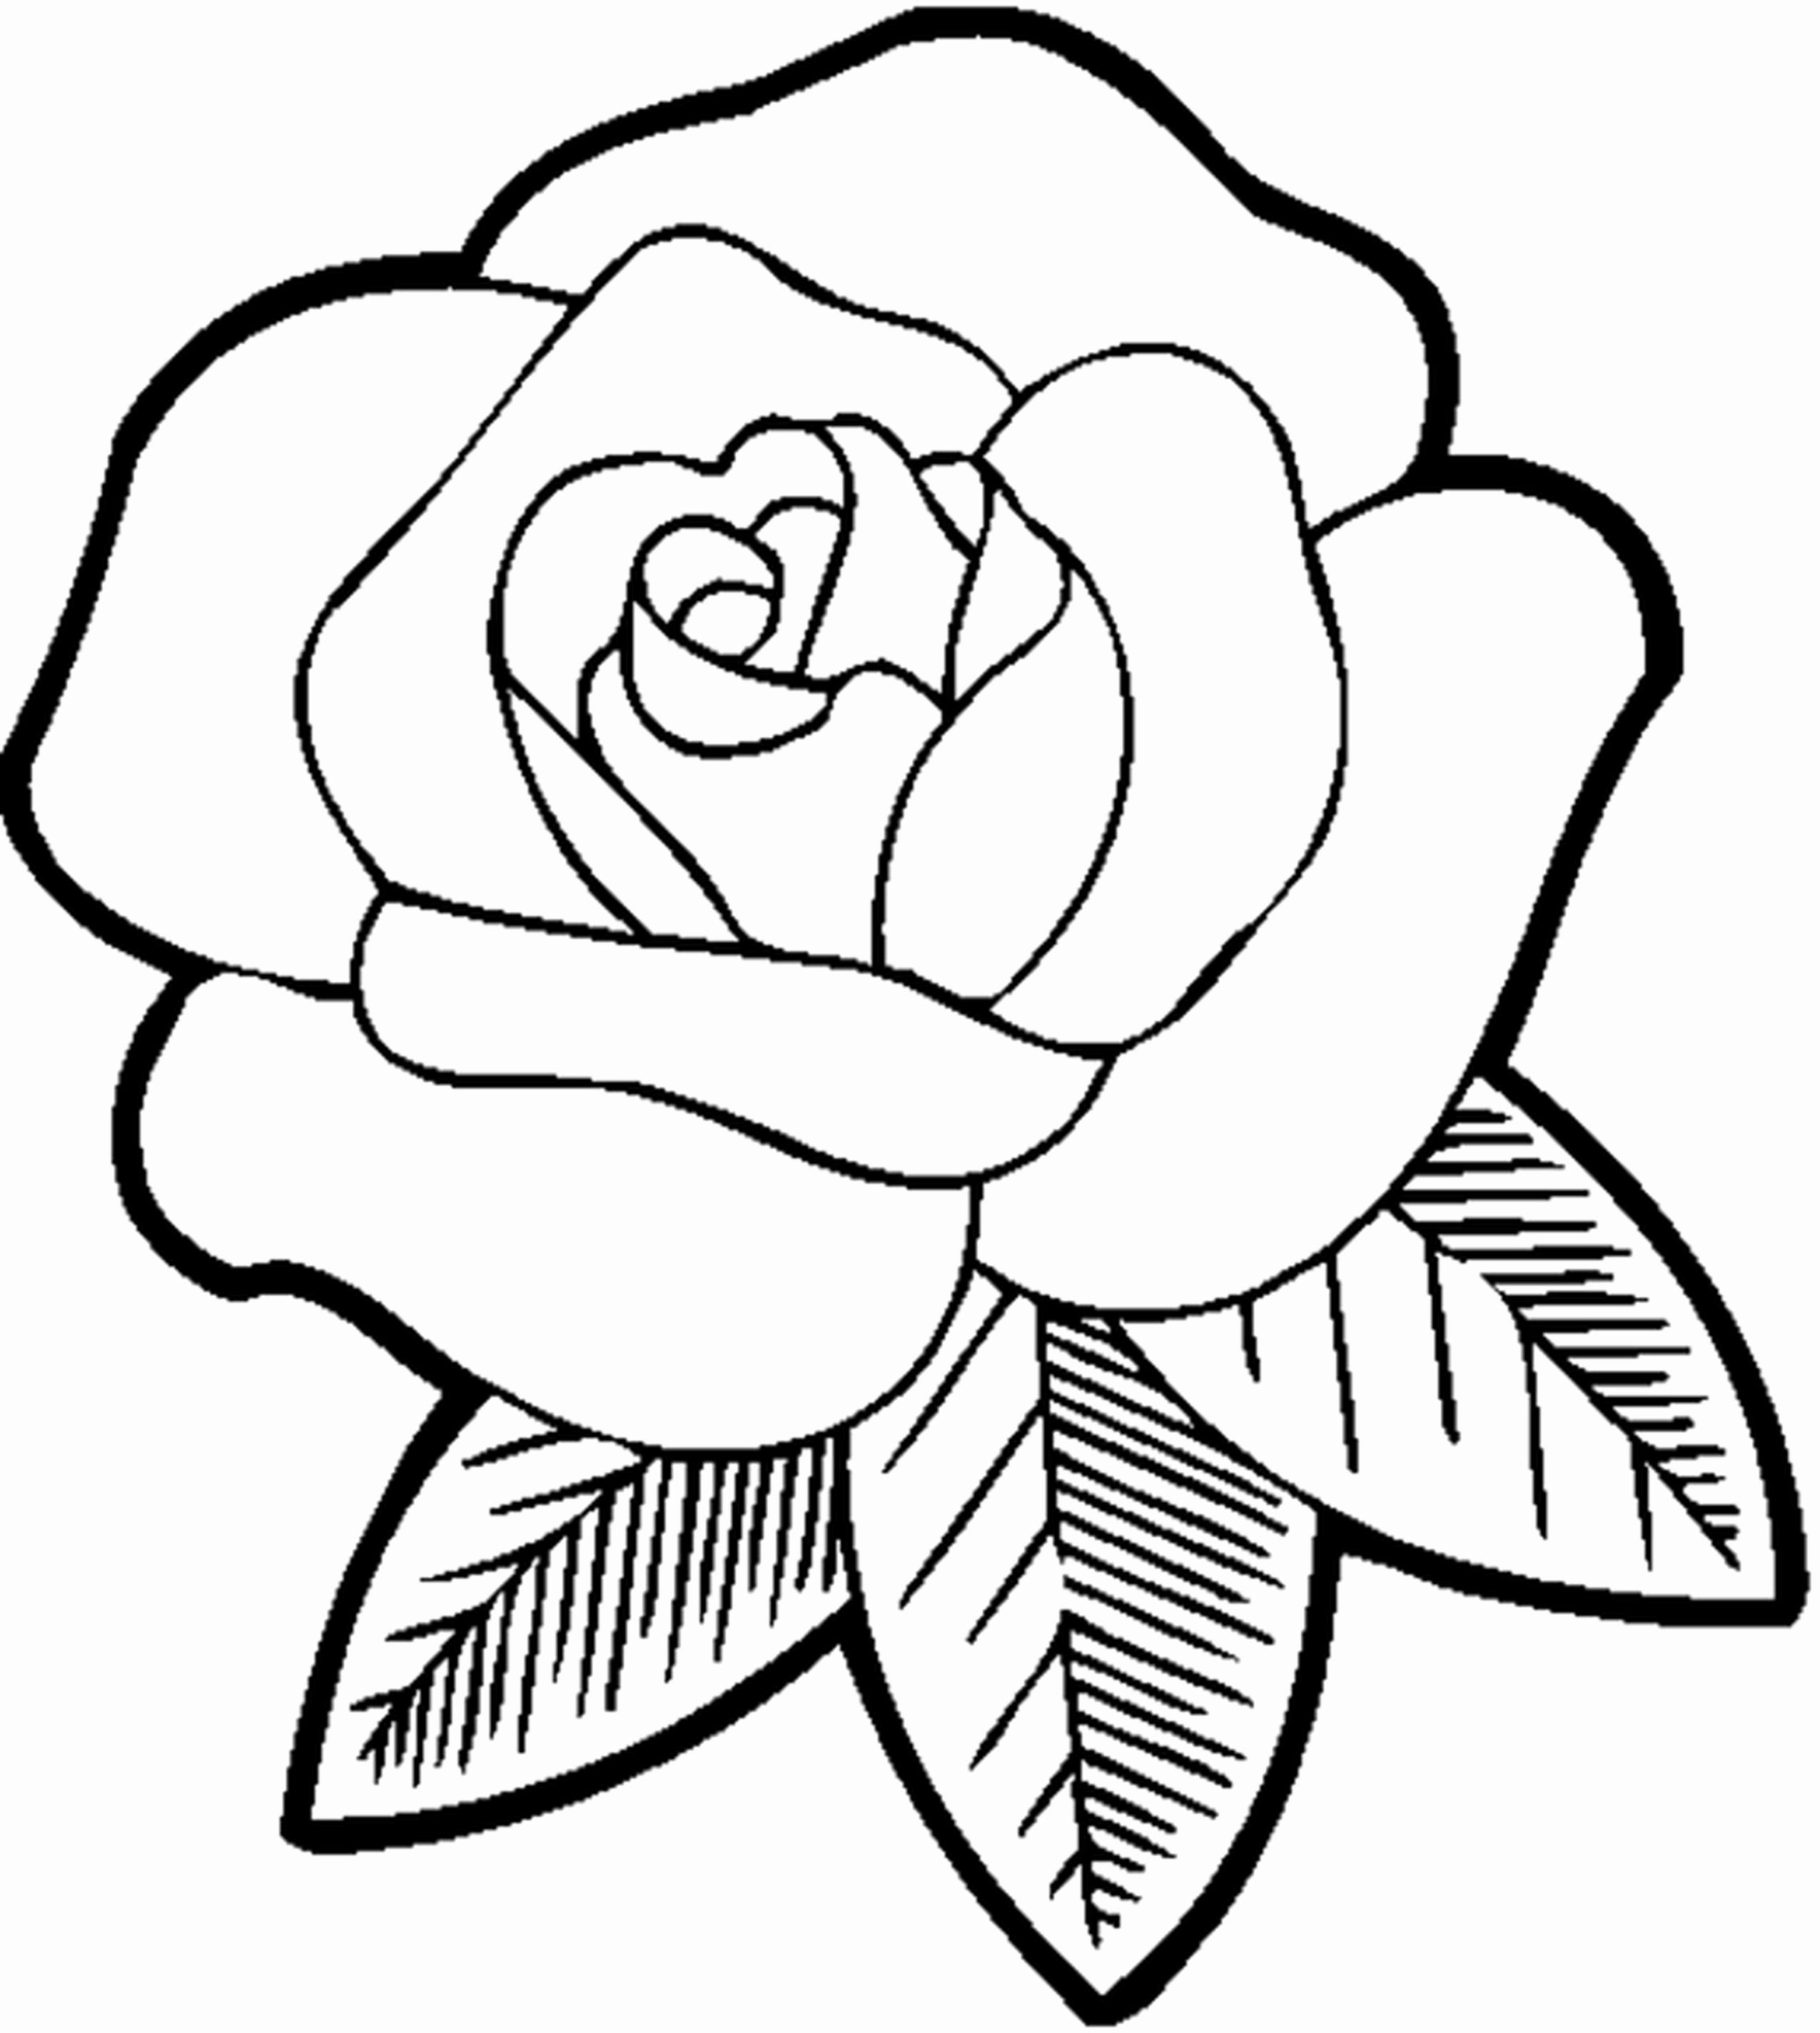 Easy Coloring Flowers Fresh Rose Flower Drawing Step Step At Getdrawings Rose Coloring Pages Printable Flower Coloring Pages Cute Coloring Pages